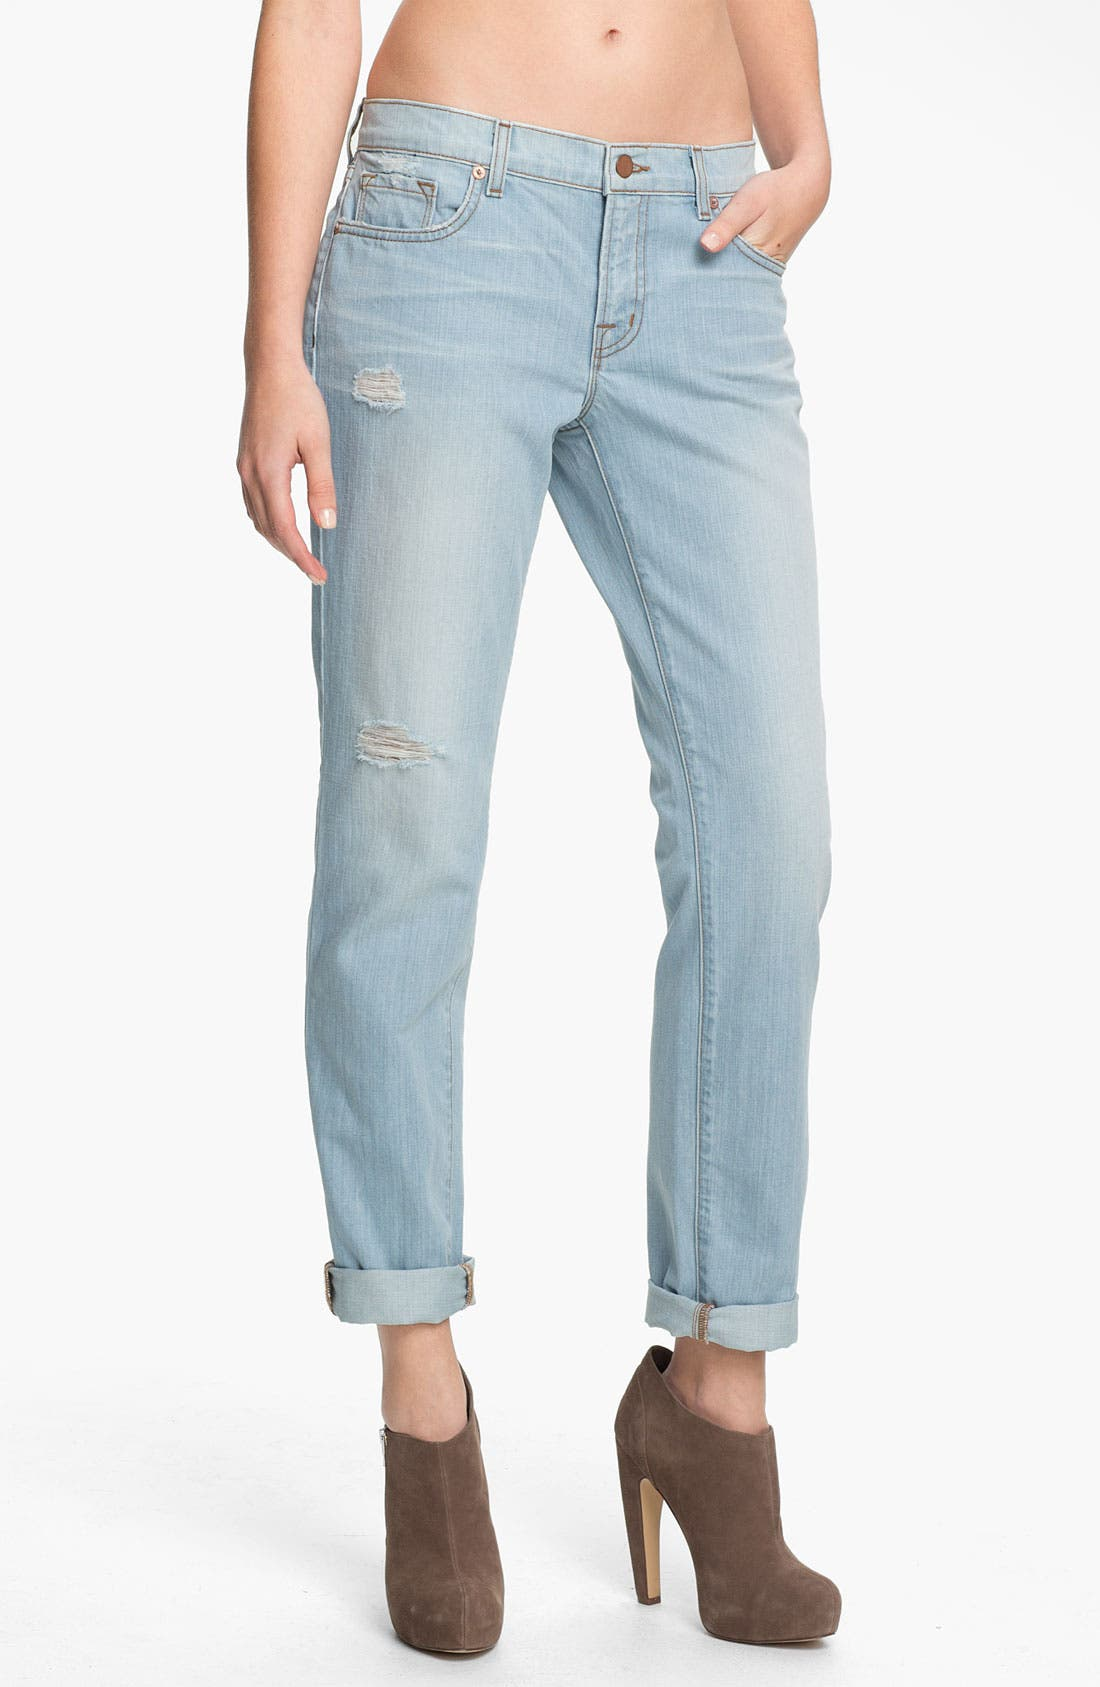 Main Image - J Brand 'Aidan' Distressed Boyfriend Fit Jeans (Illusion Destruct)